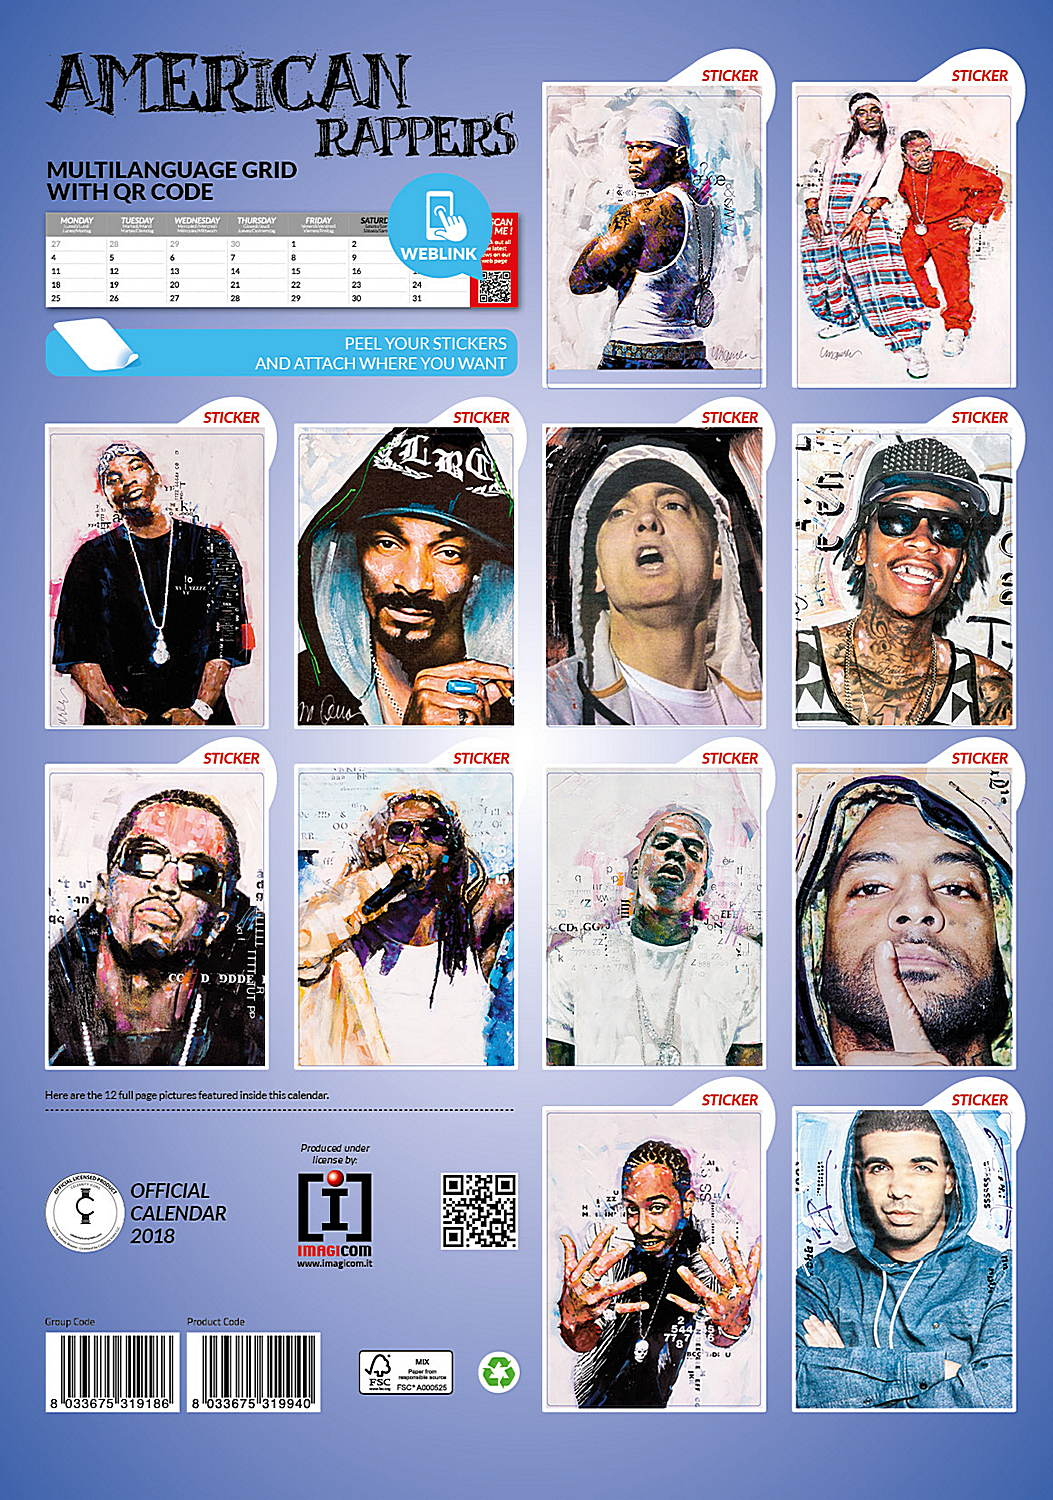 American Rappers Celebrity Wall Calendar 2018 back 8033675319940